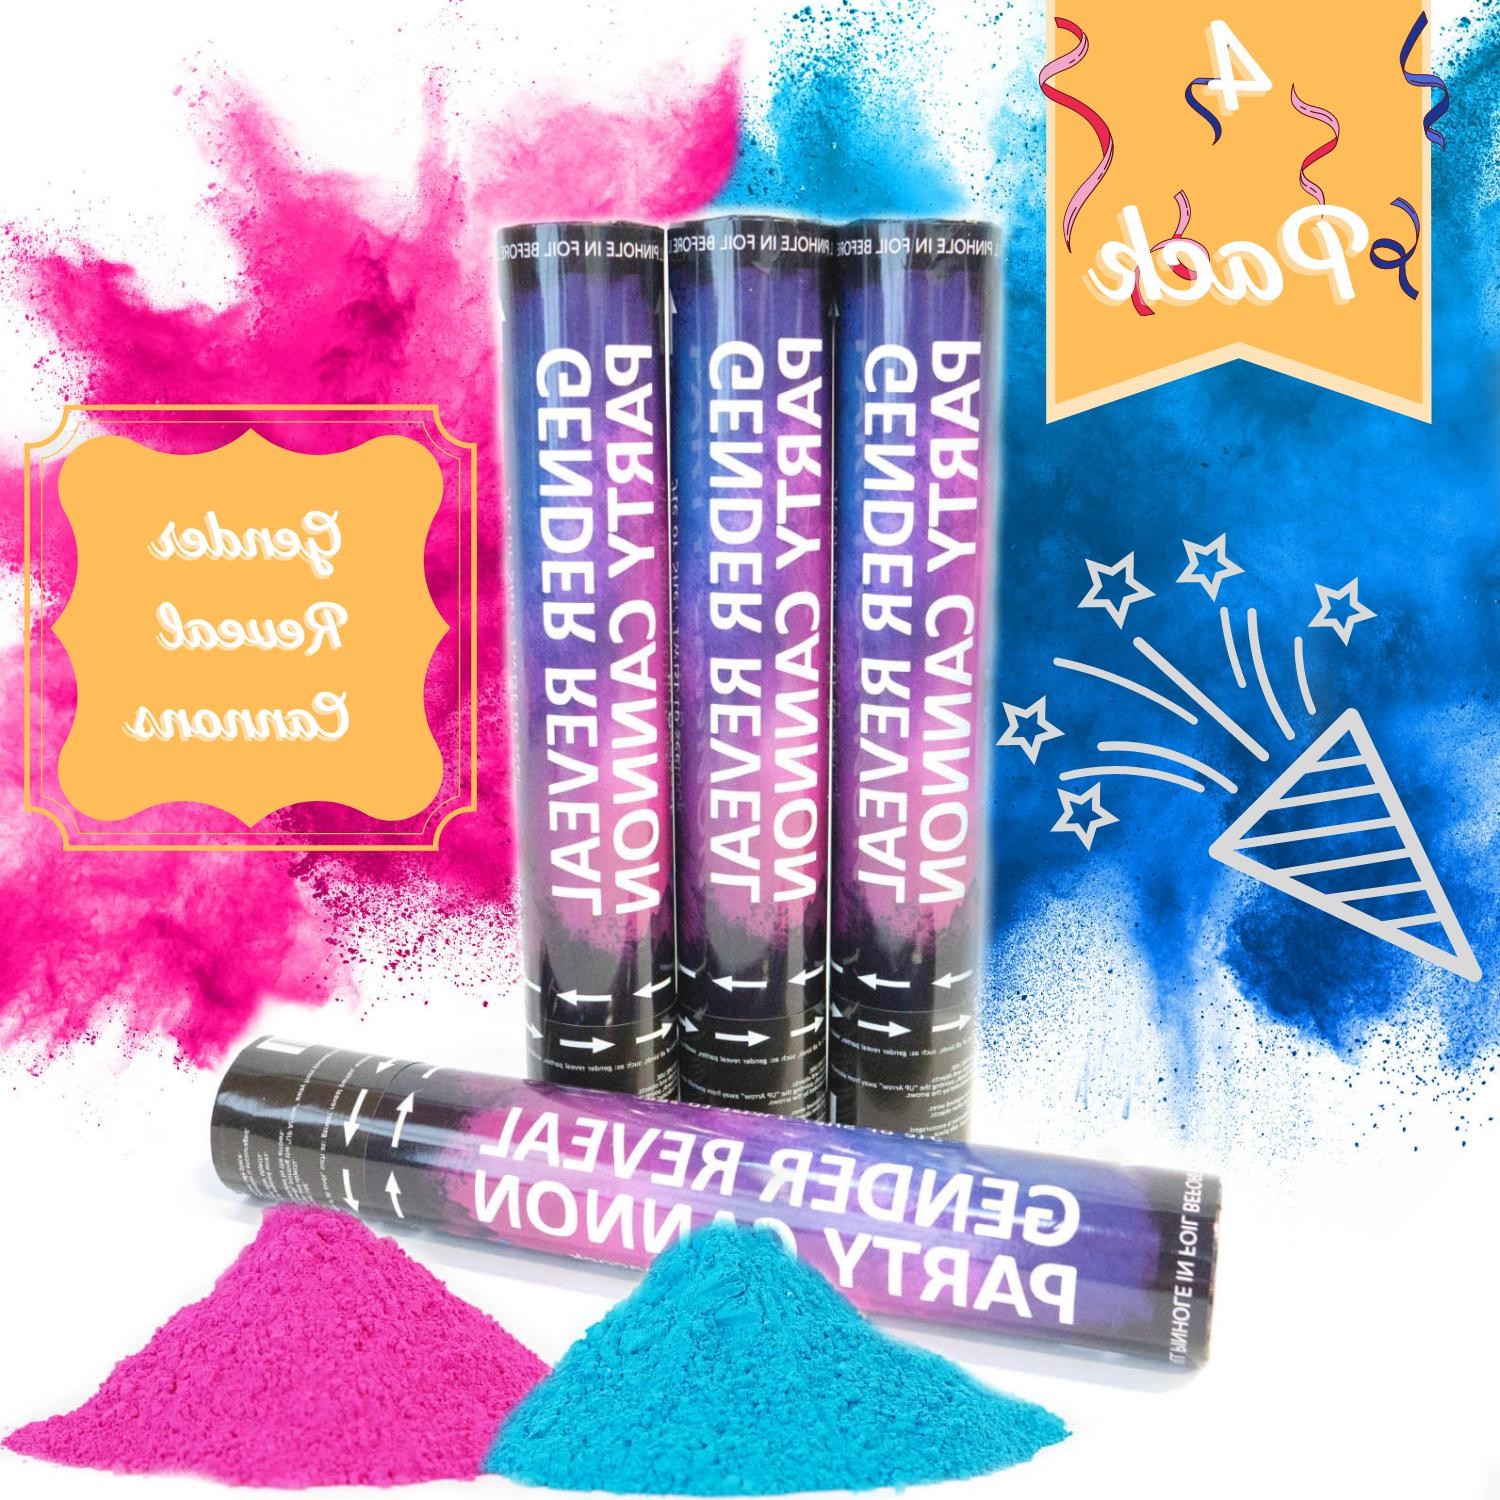 4 baby gender reveal powder cannons air